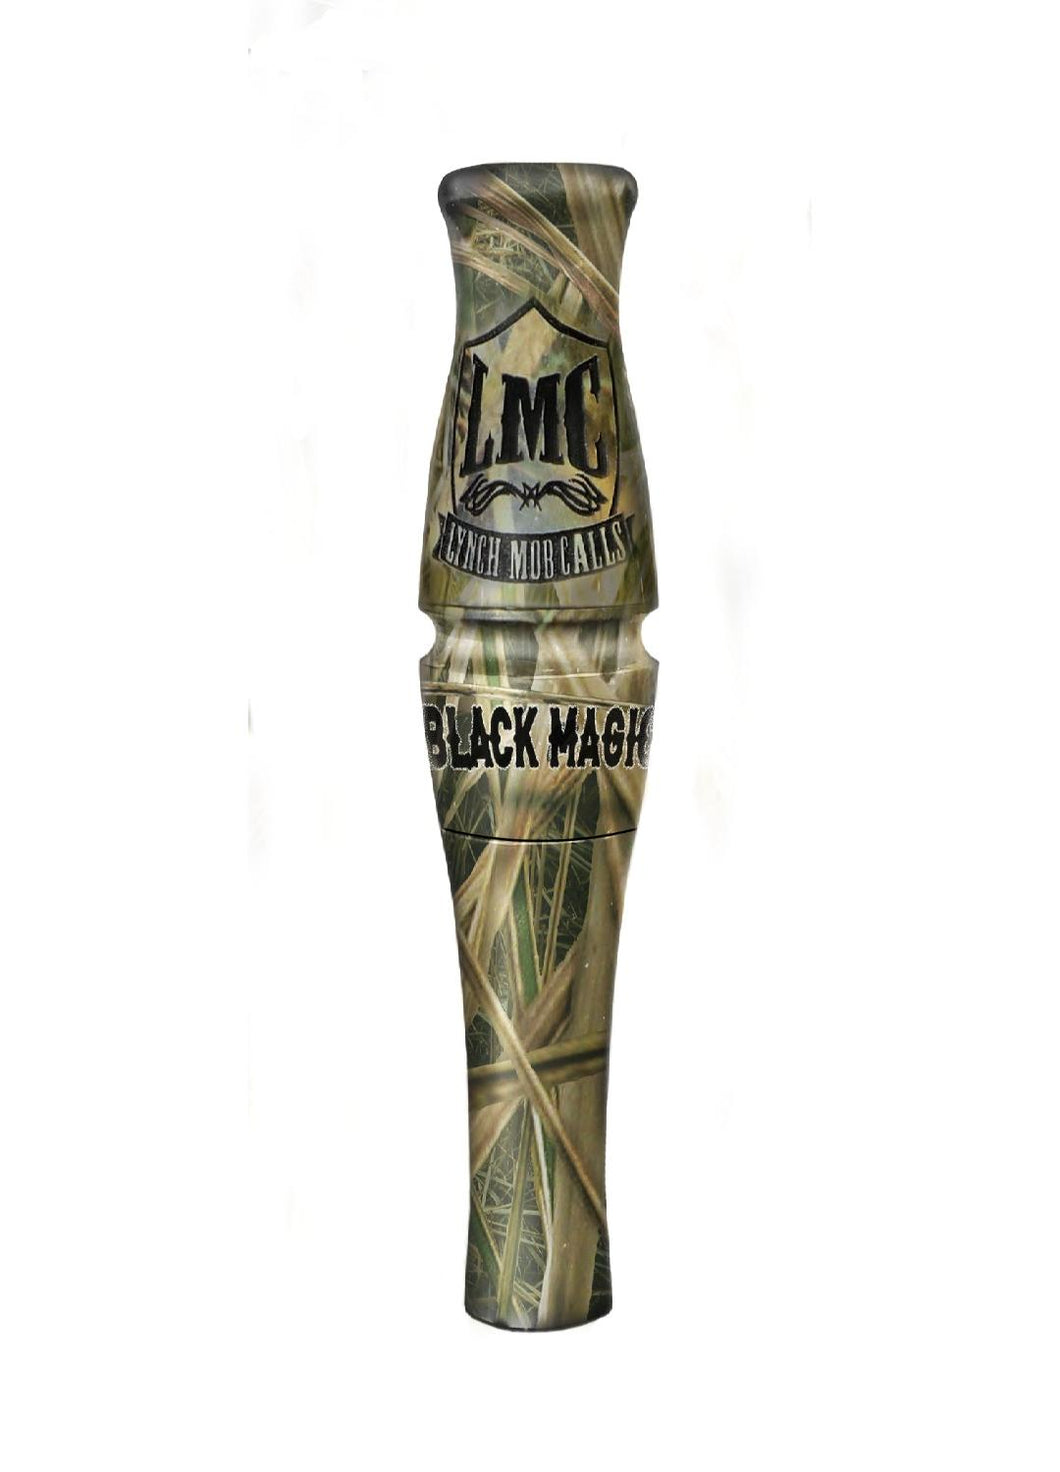 Lynch Mob Calls Black Magic Mossy Oak Shadow Grass